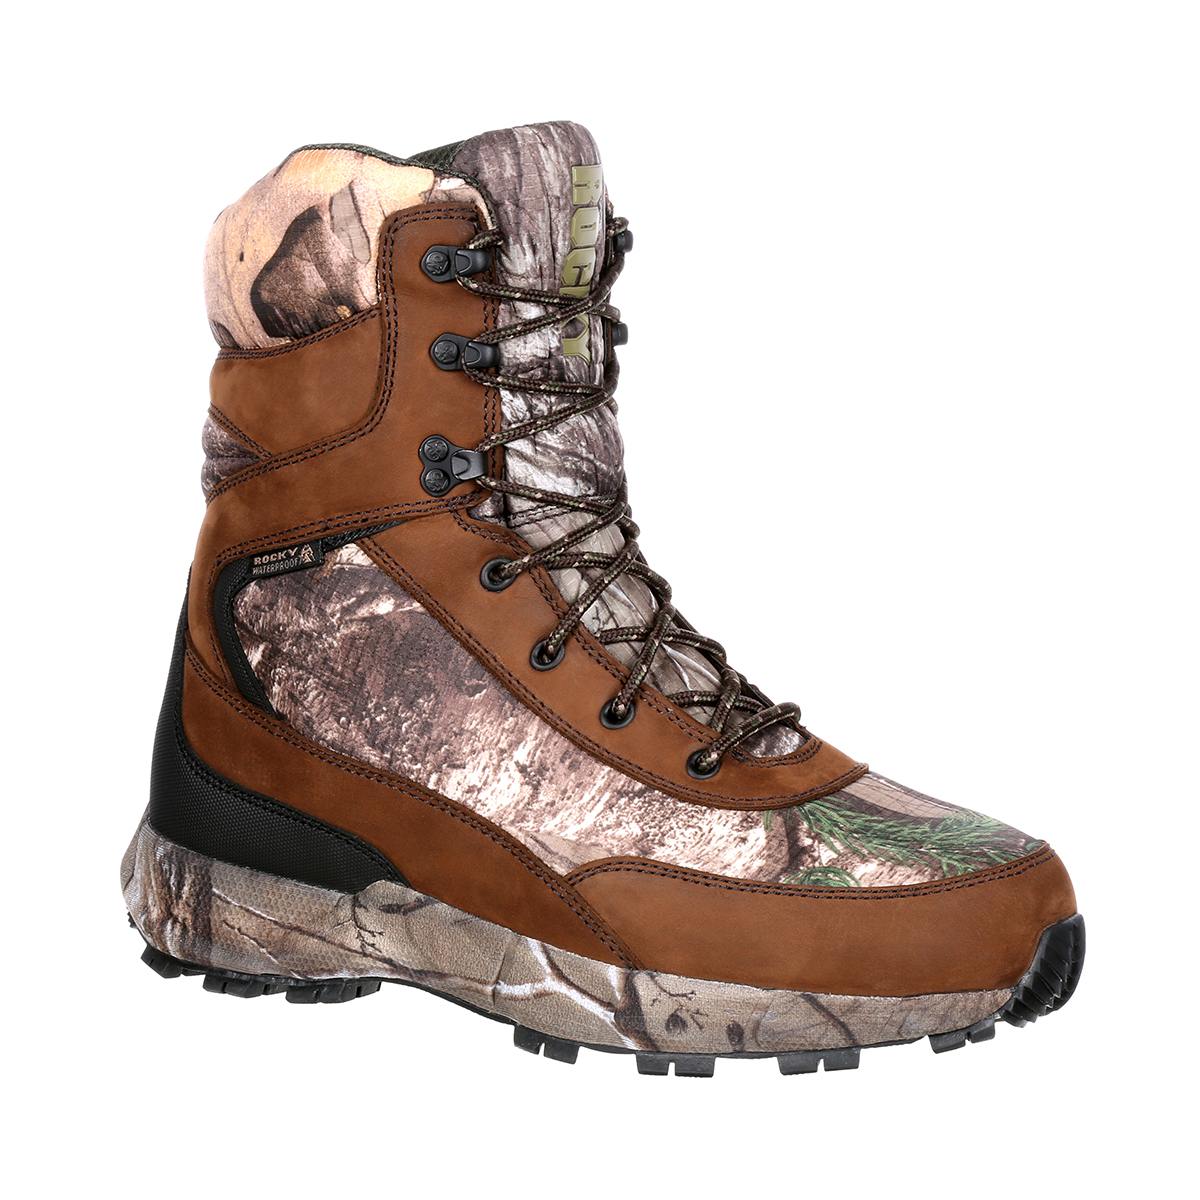 Rocky Men's 8'' Camo Hunting Outdoor Boots Camouflage Nylon Rubber 10.5 M by Rocky